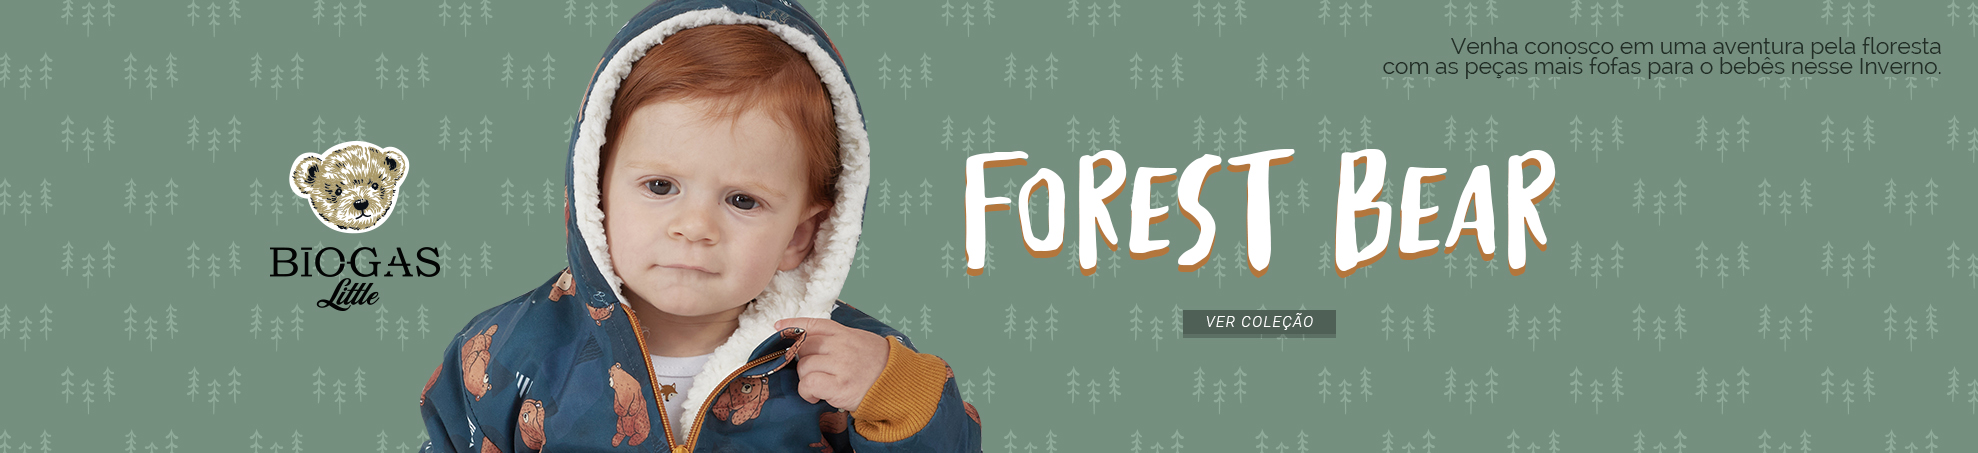 banner forest bear biogás little.jpg